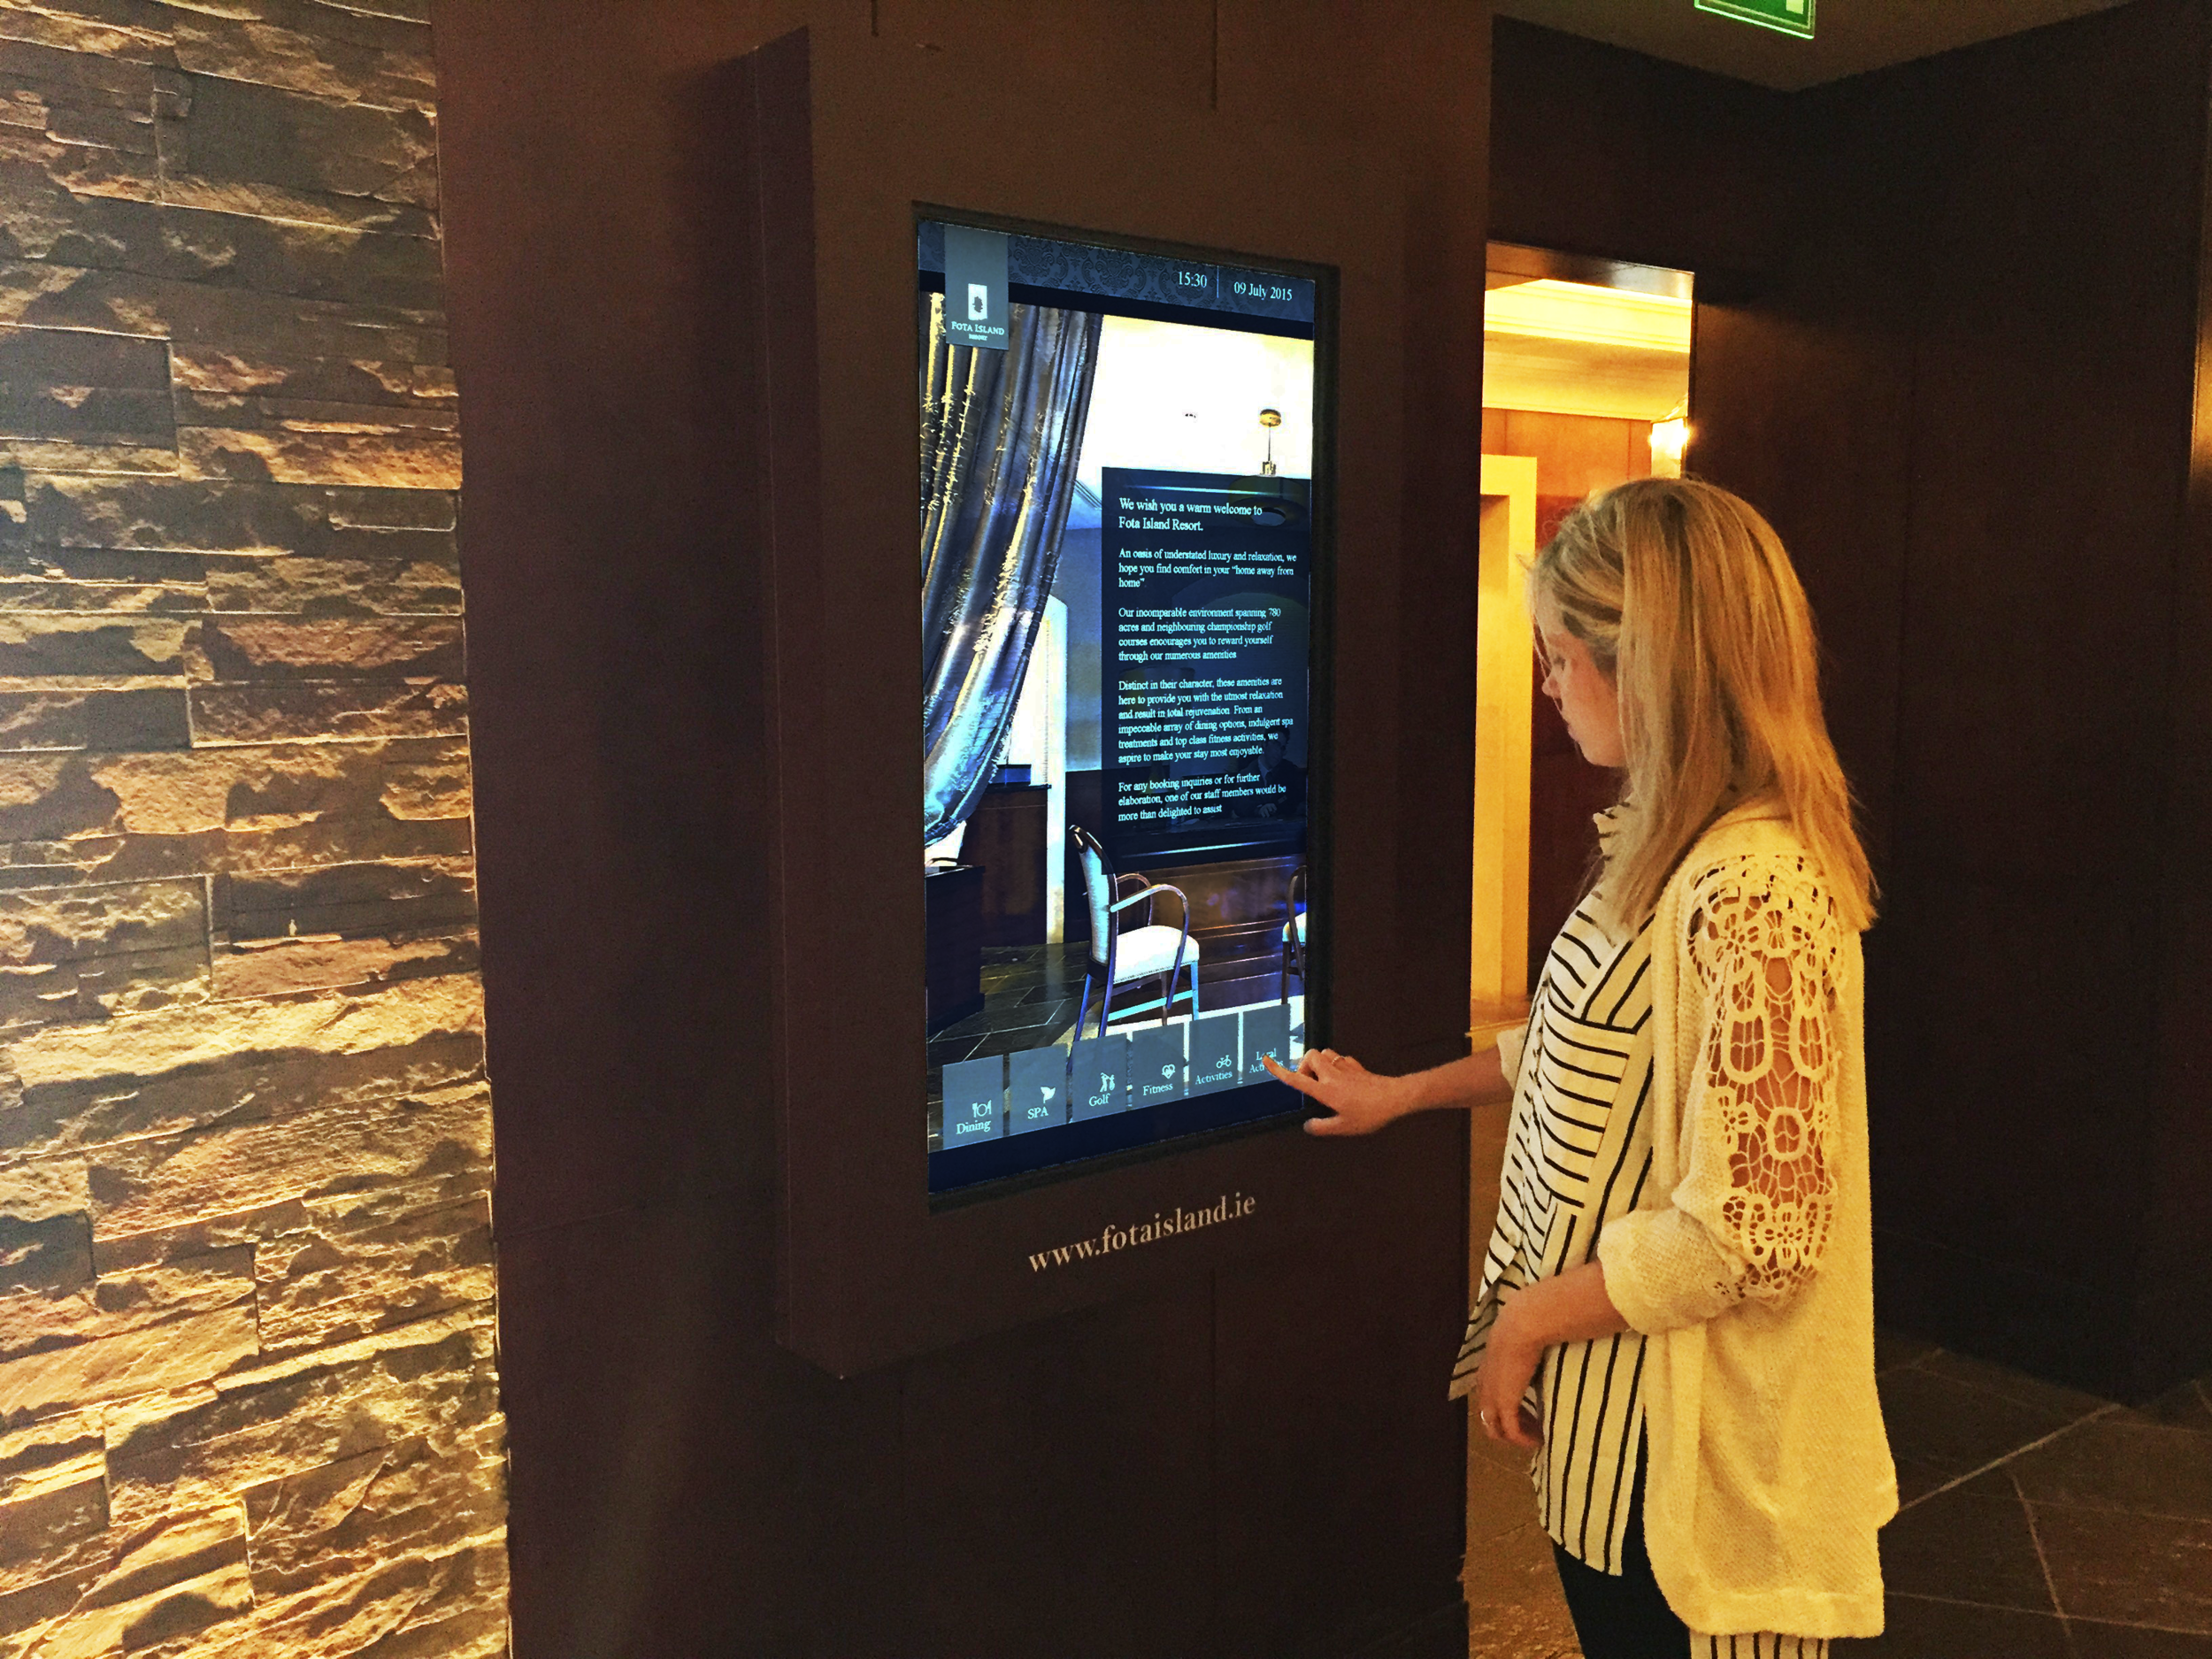 Fota Island Hotel Touch Interface